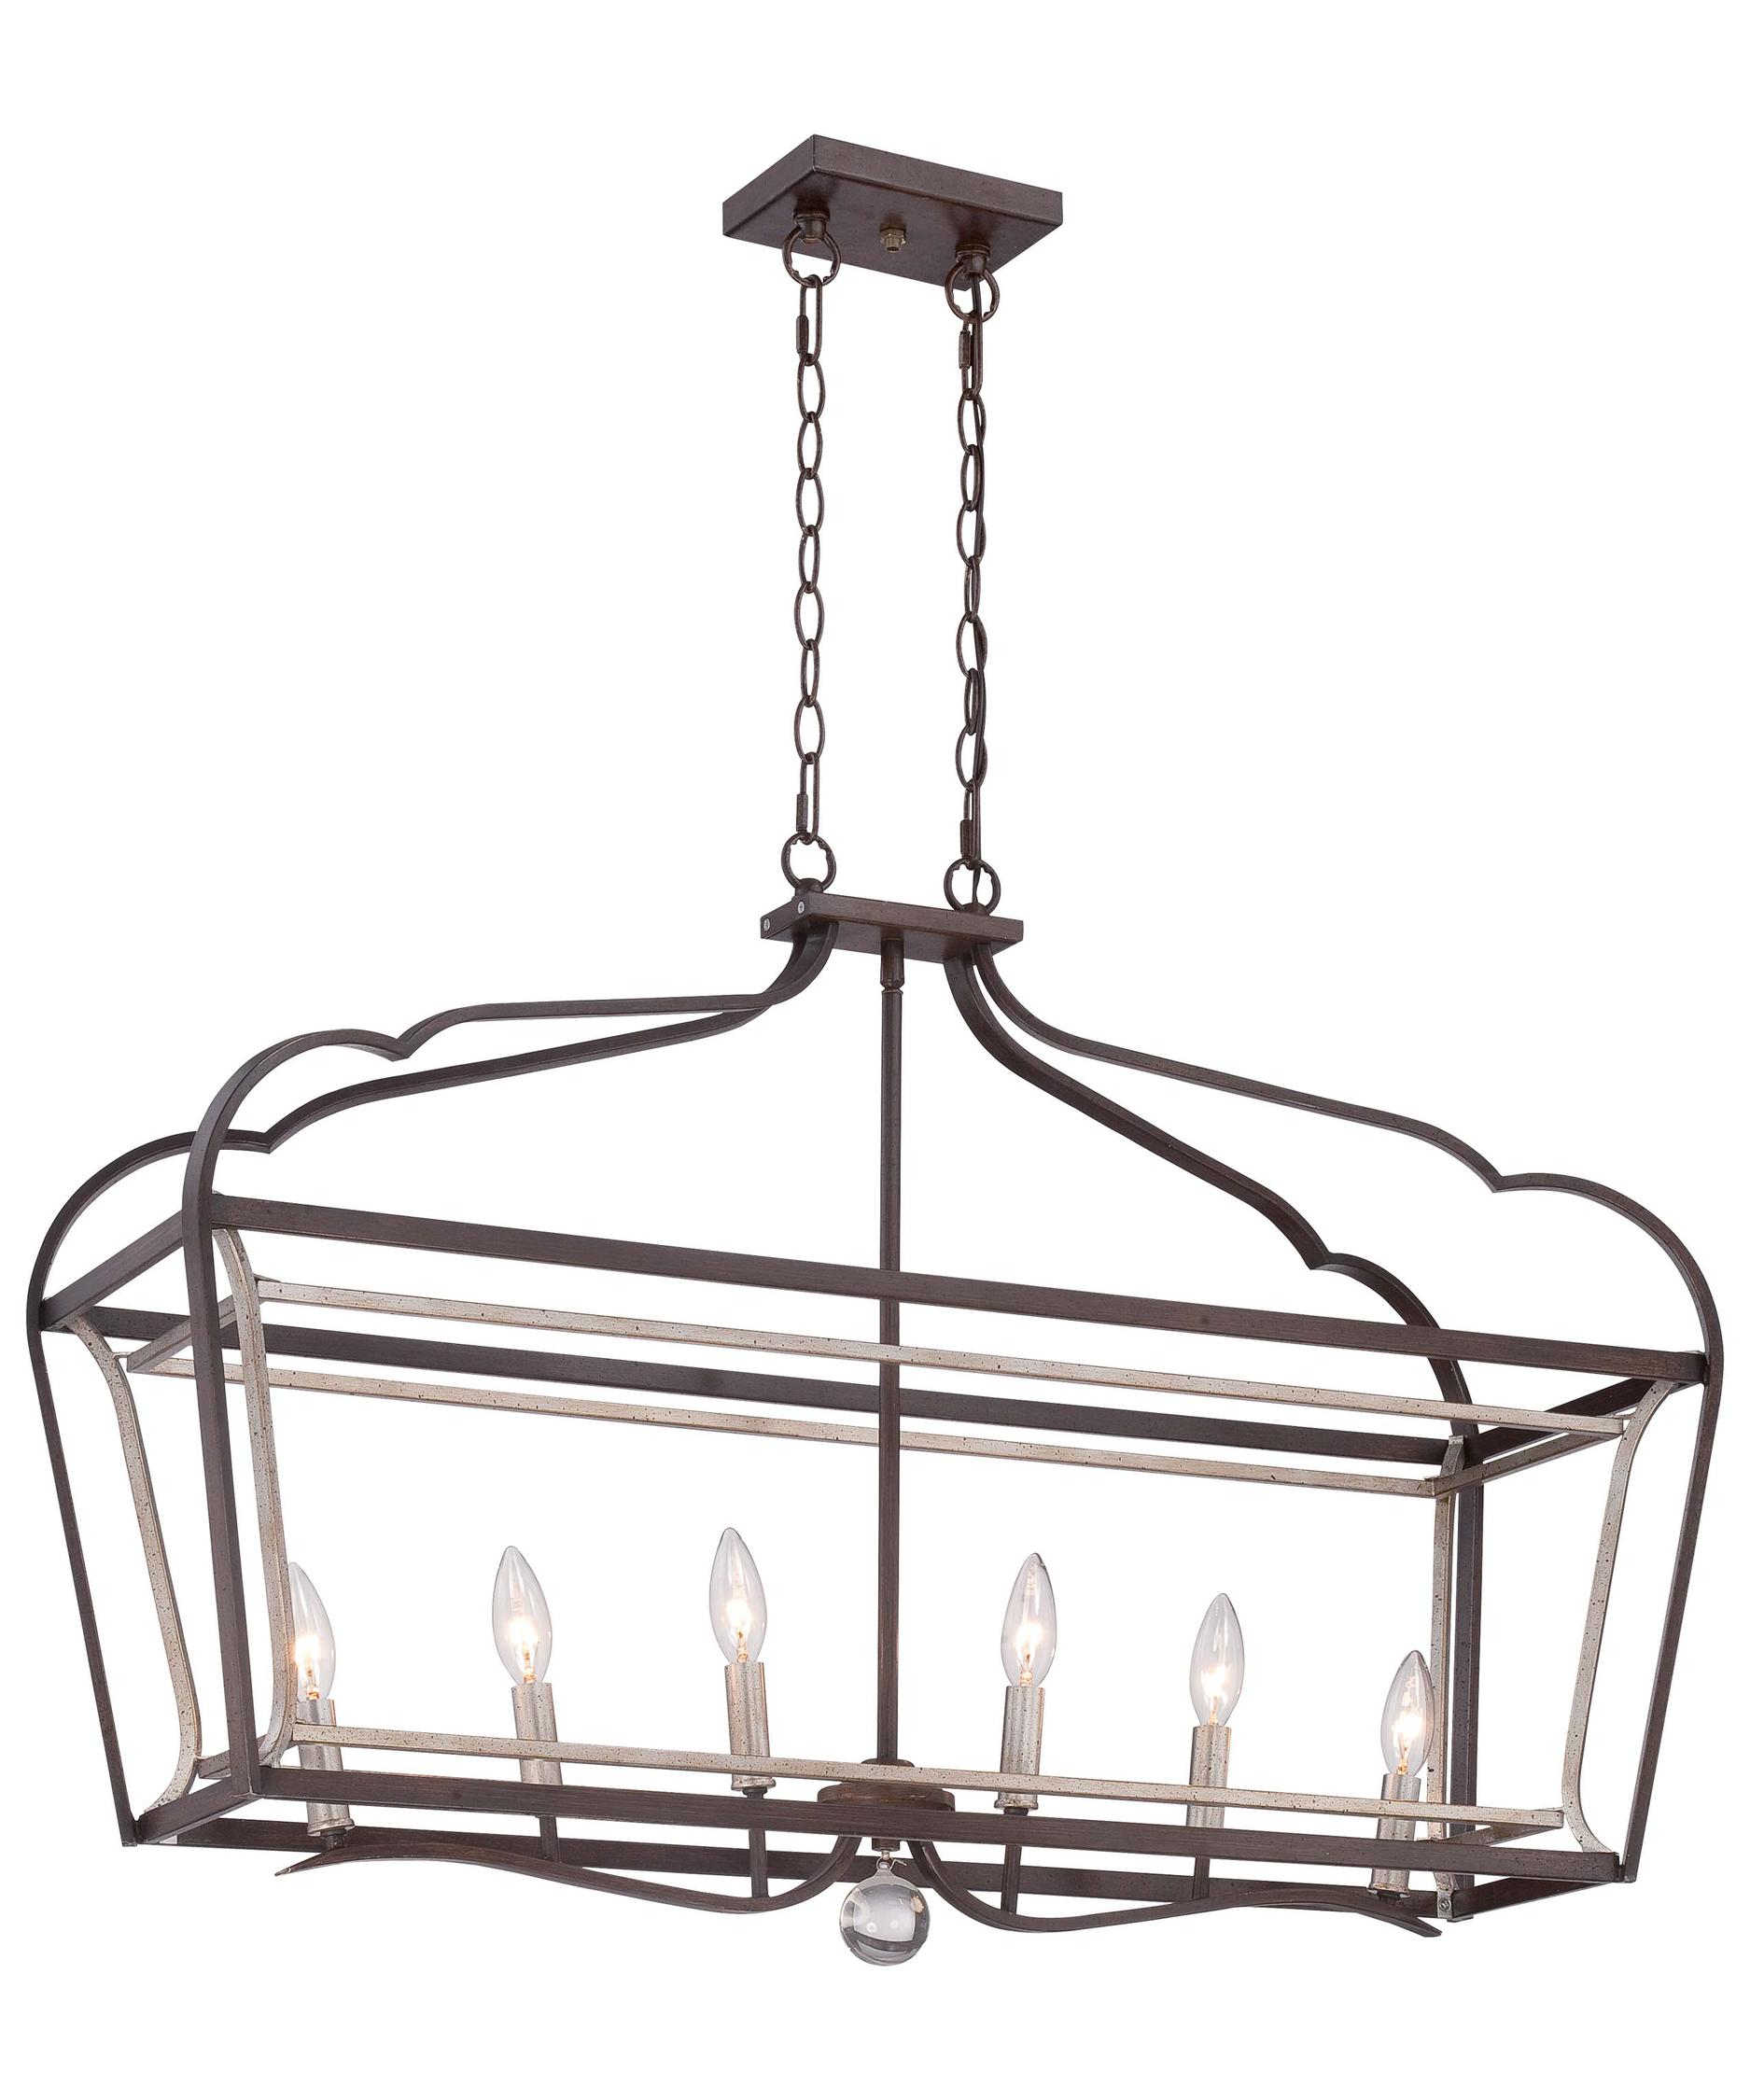 minka lavery astrapia 11 inch wide island light capitol lighting - Minka Lighting